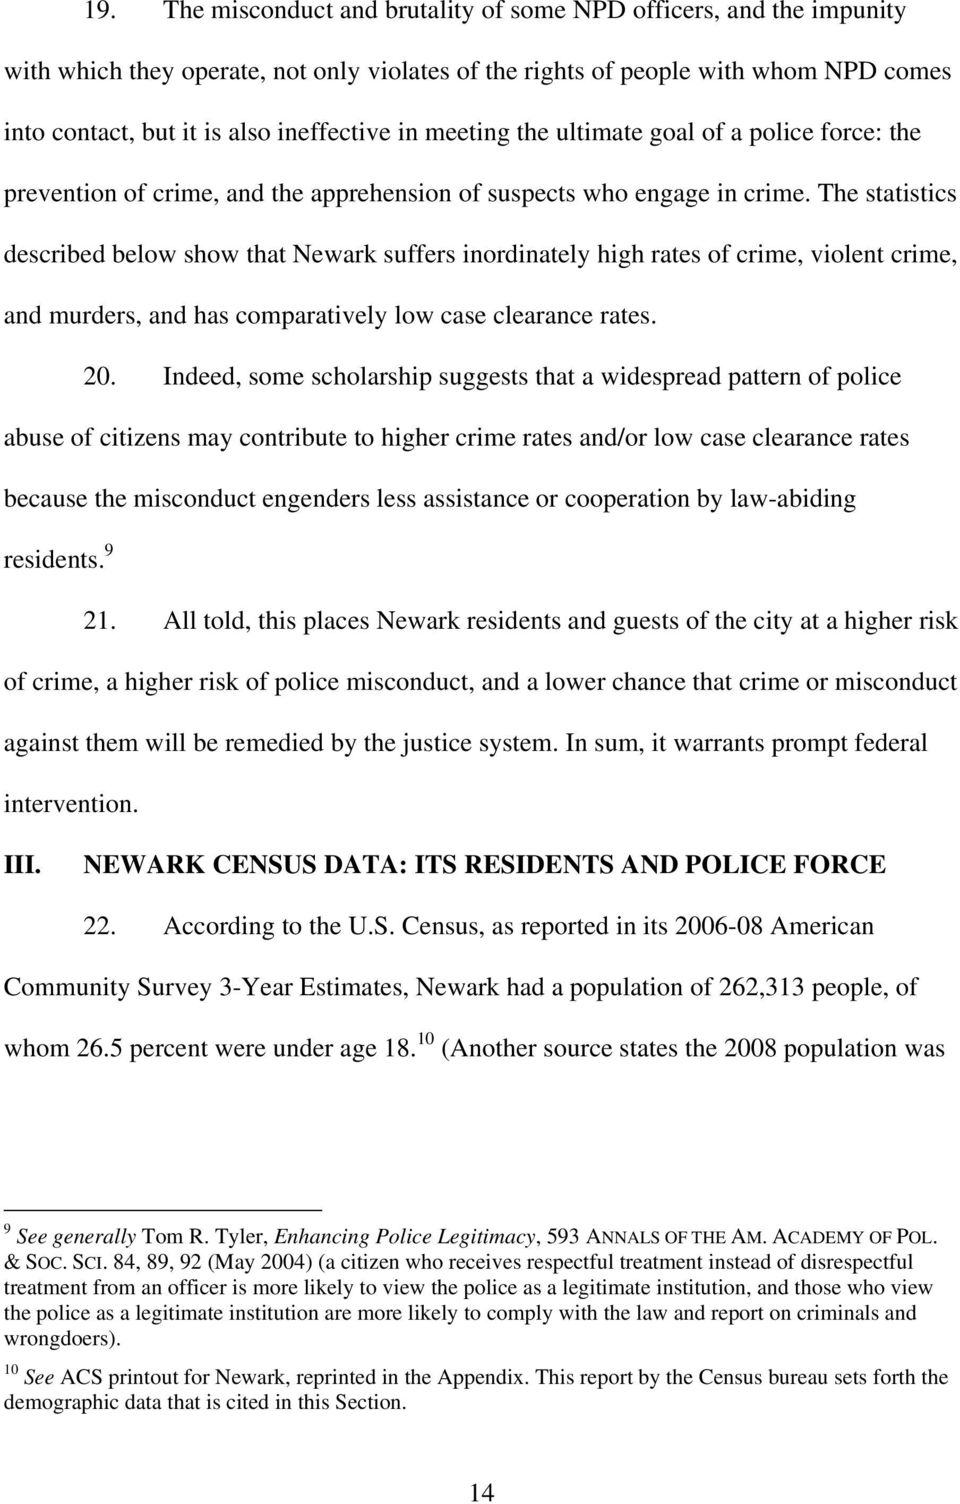 The statistics described below show that Newark suffers inordinately high rates of crime, violent crime, and murders, and has comparatively low case clearance rates. 20.